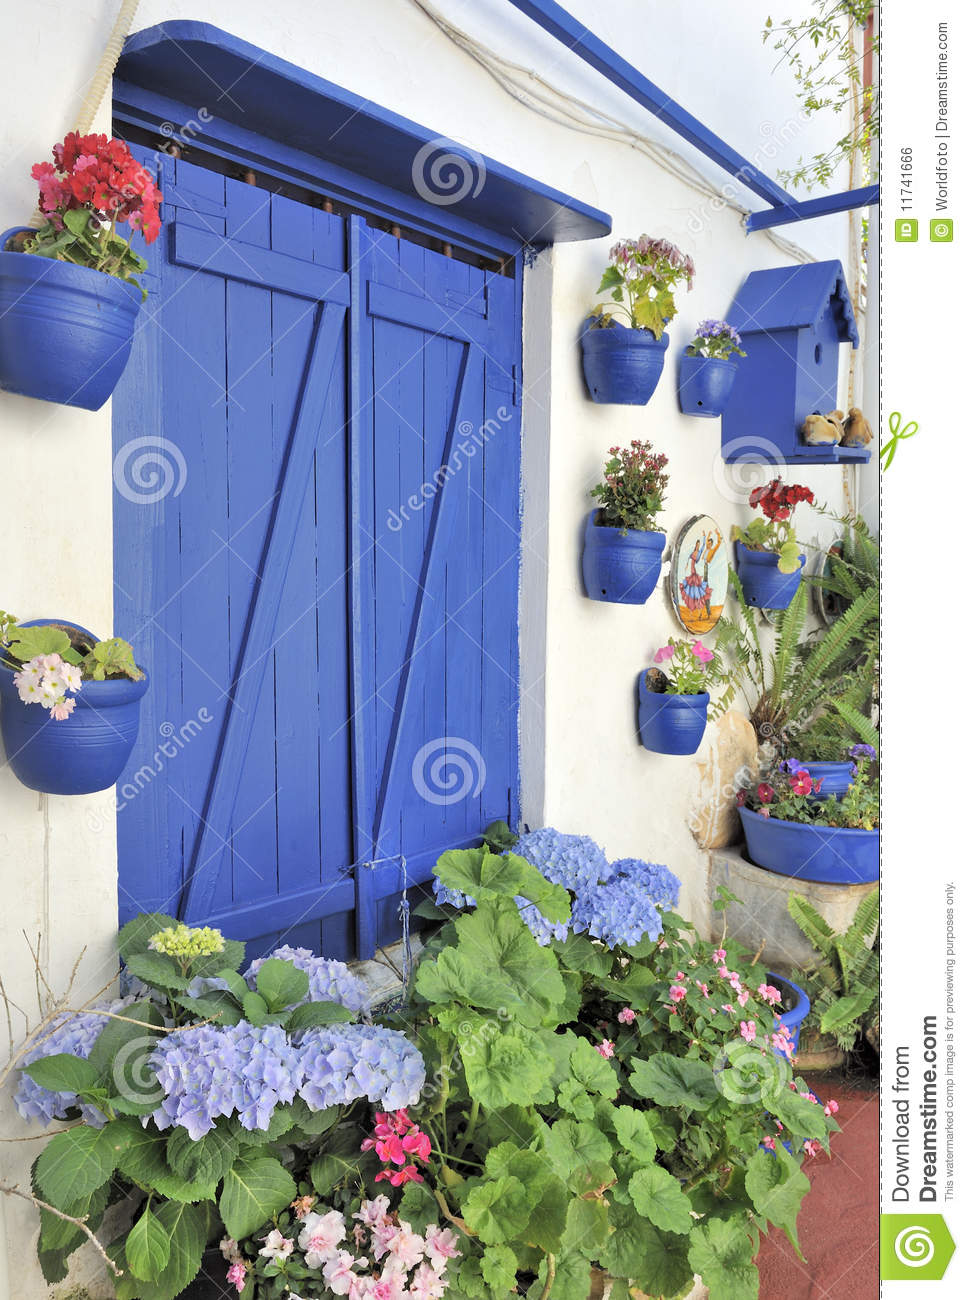 Traditional turkish house royalty free stock image image for Maison traditionnelle turque